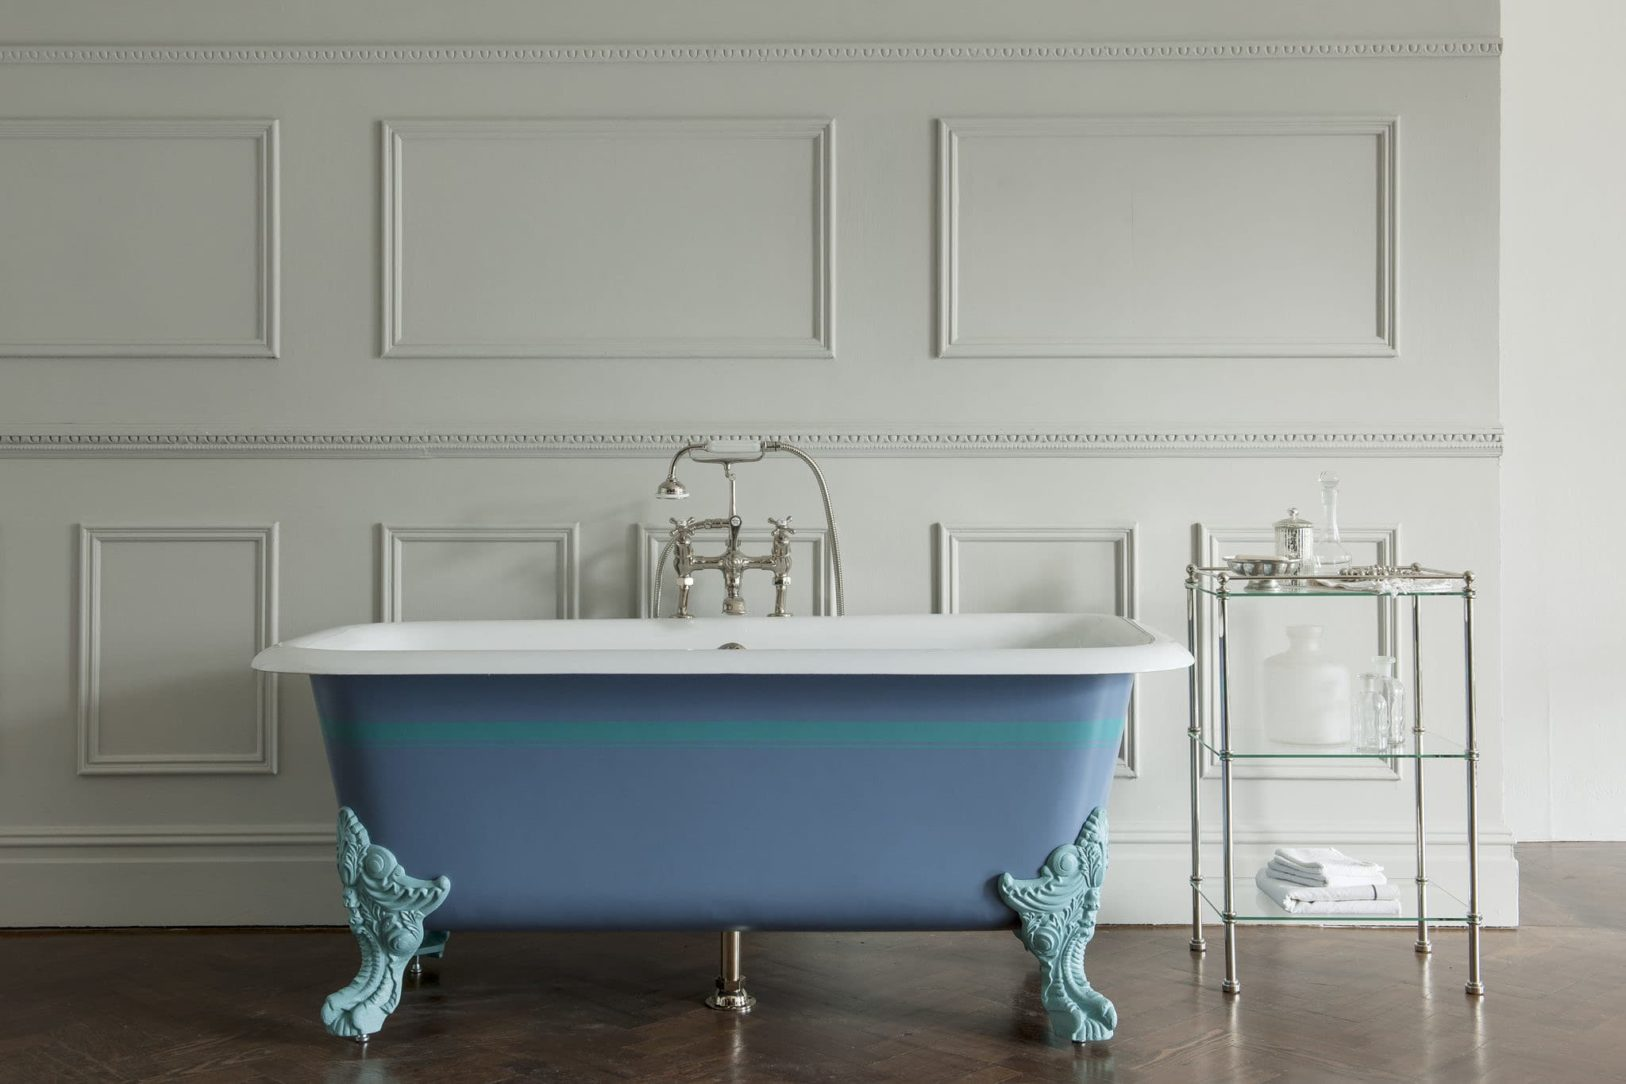 The Liffey Cast Iron Bath Tub